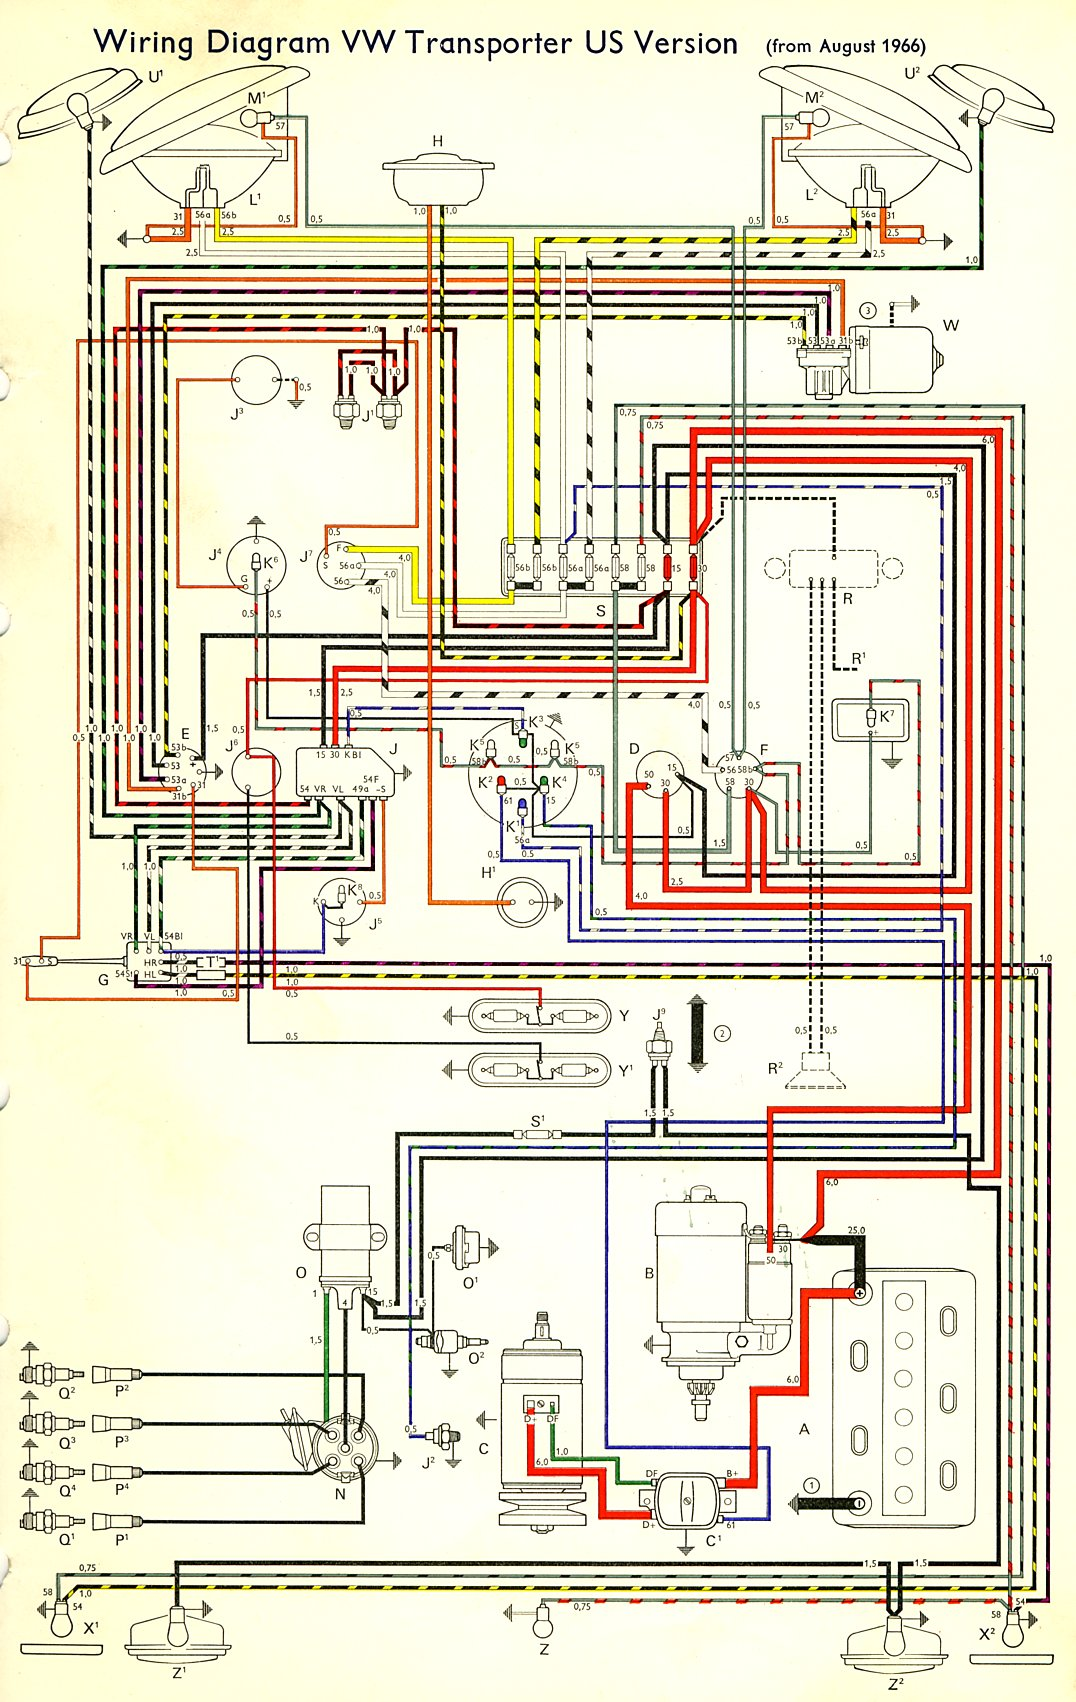 hight resolution of wiring 6tn msd diagram ignition pn6402 wiring library mix wiring 6tn msd diagram ignition pn6402